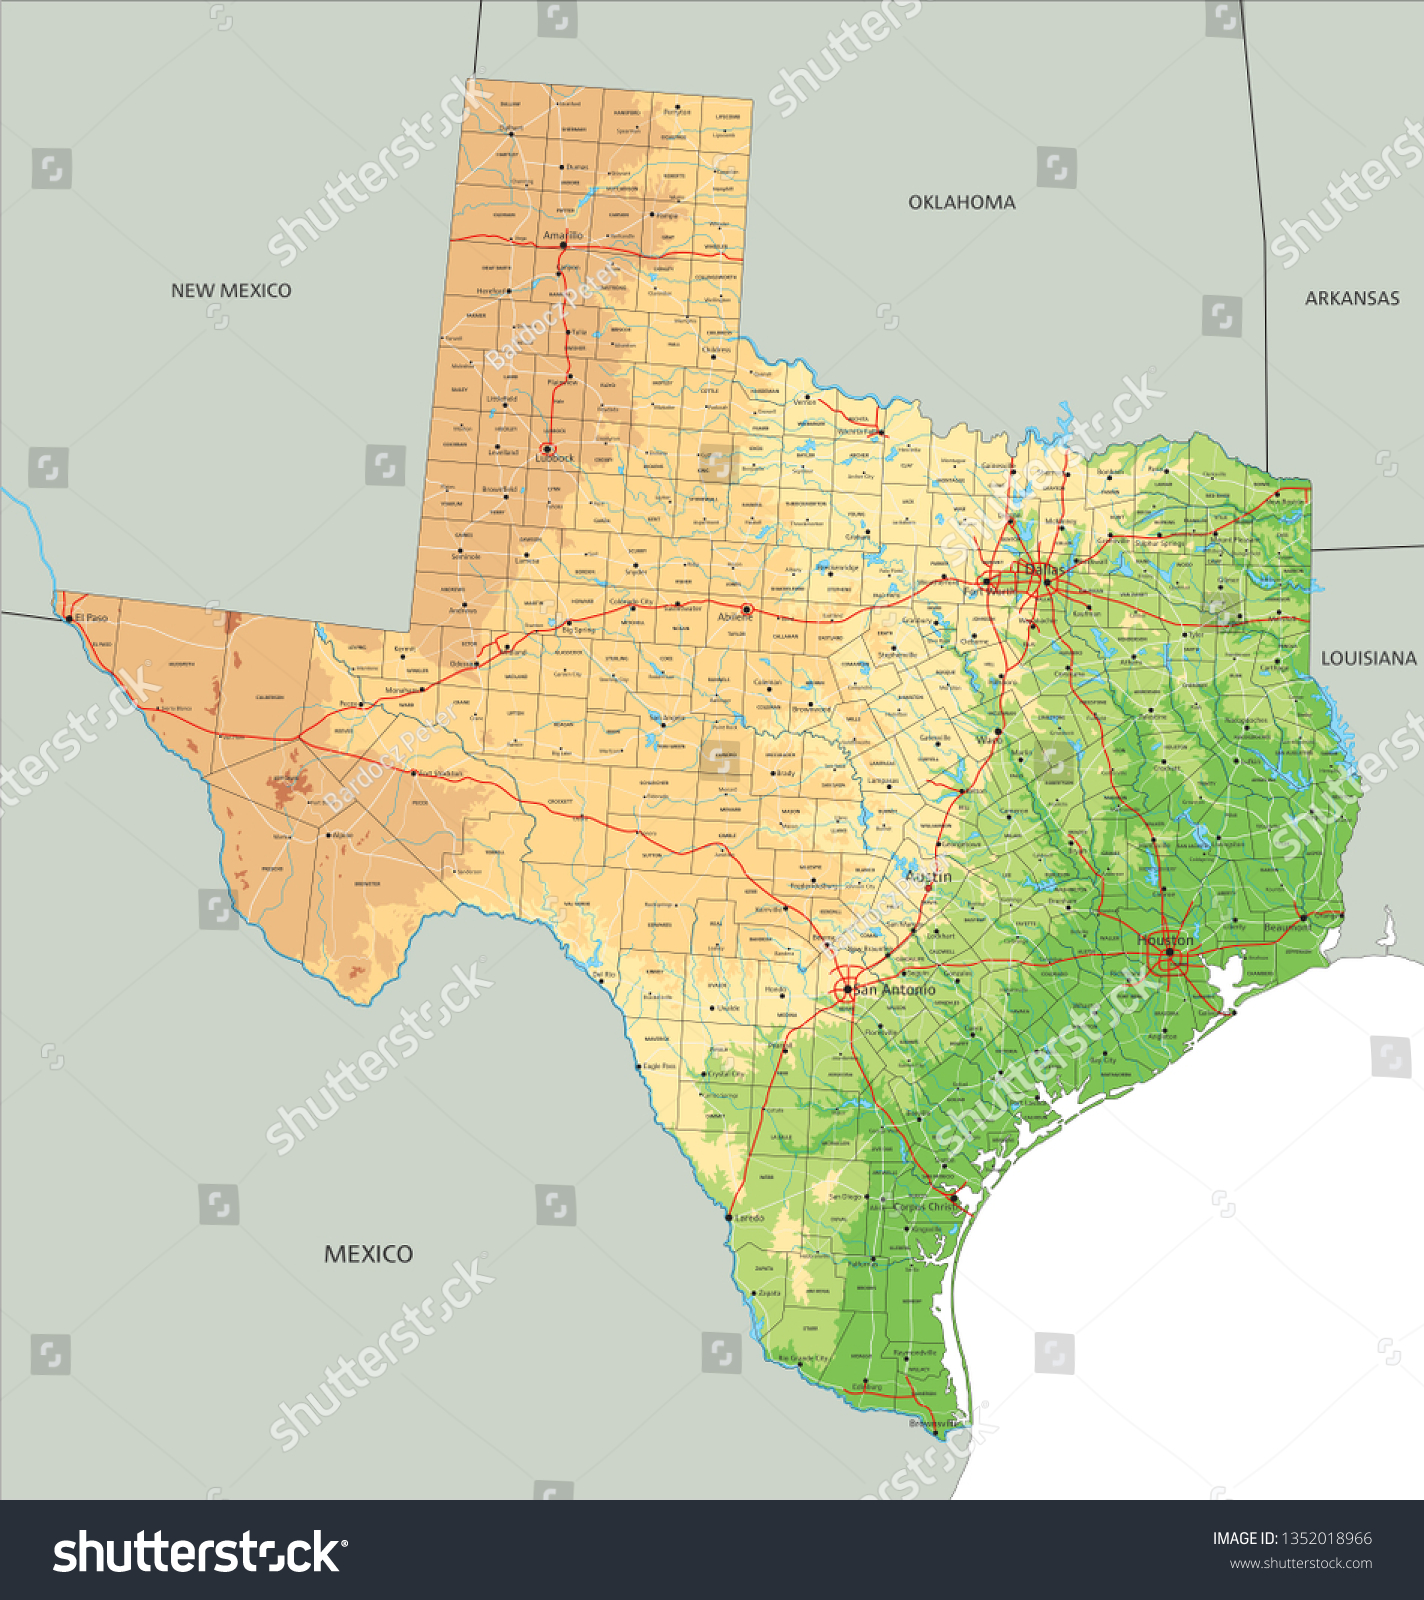 Texas Physical Map High Detailed Texas Physical Map Labeling Stock Vector (Royalty